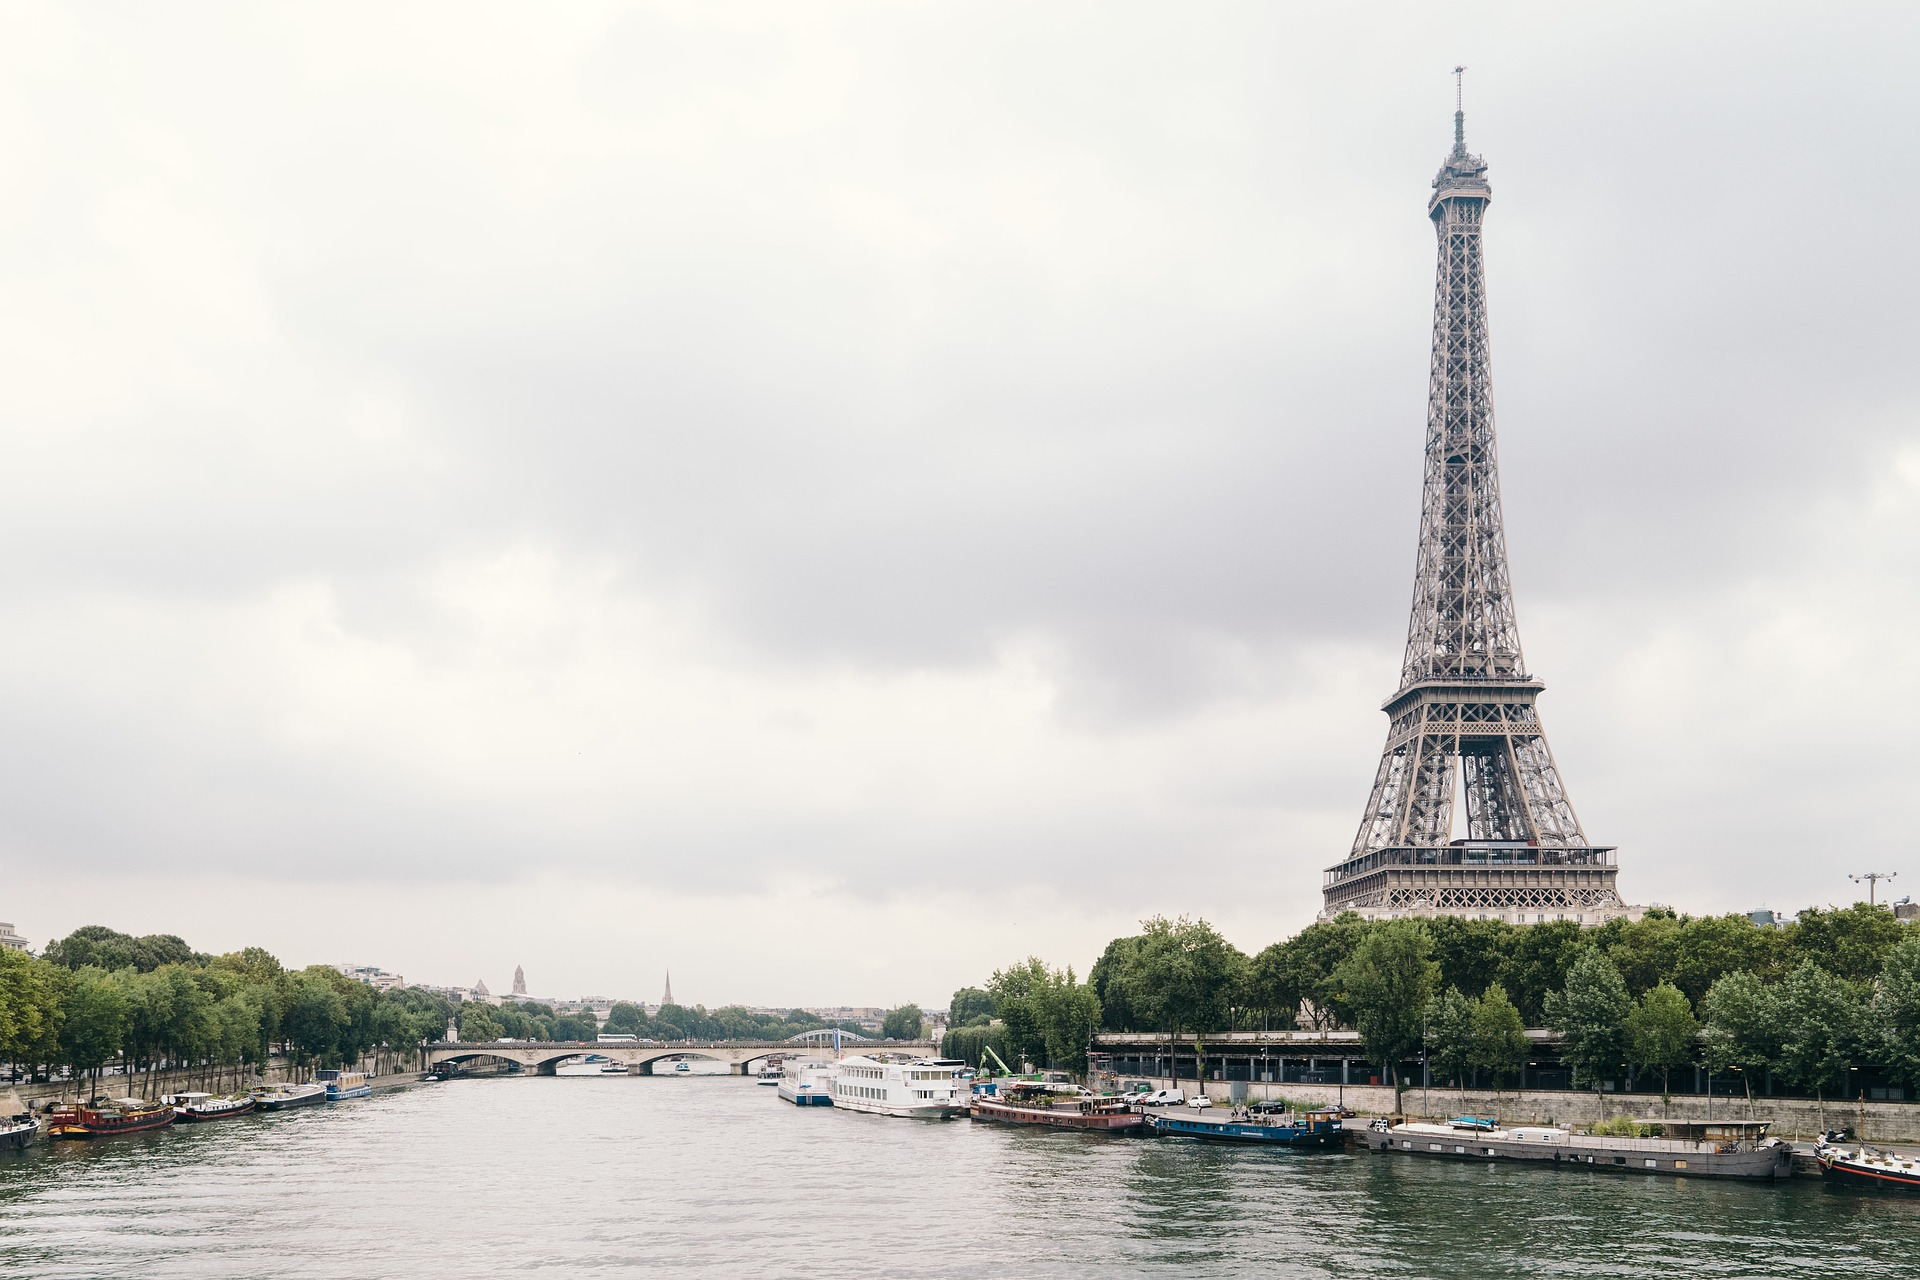 Seine River and Eiffel Tower in Paris